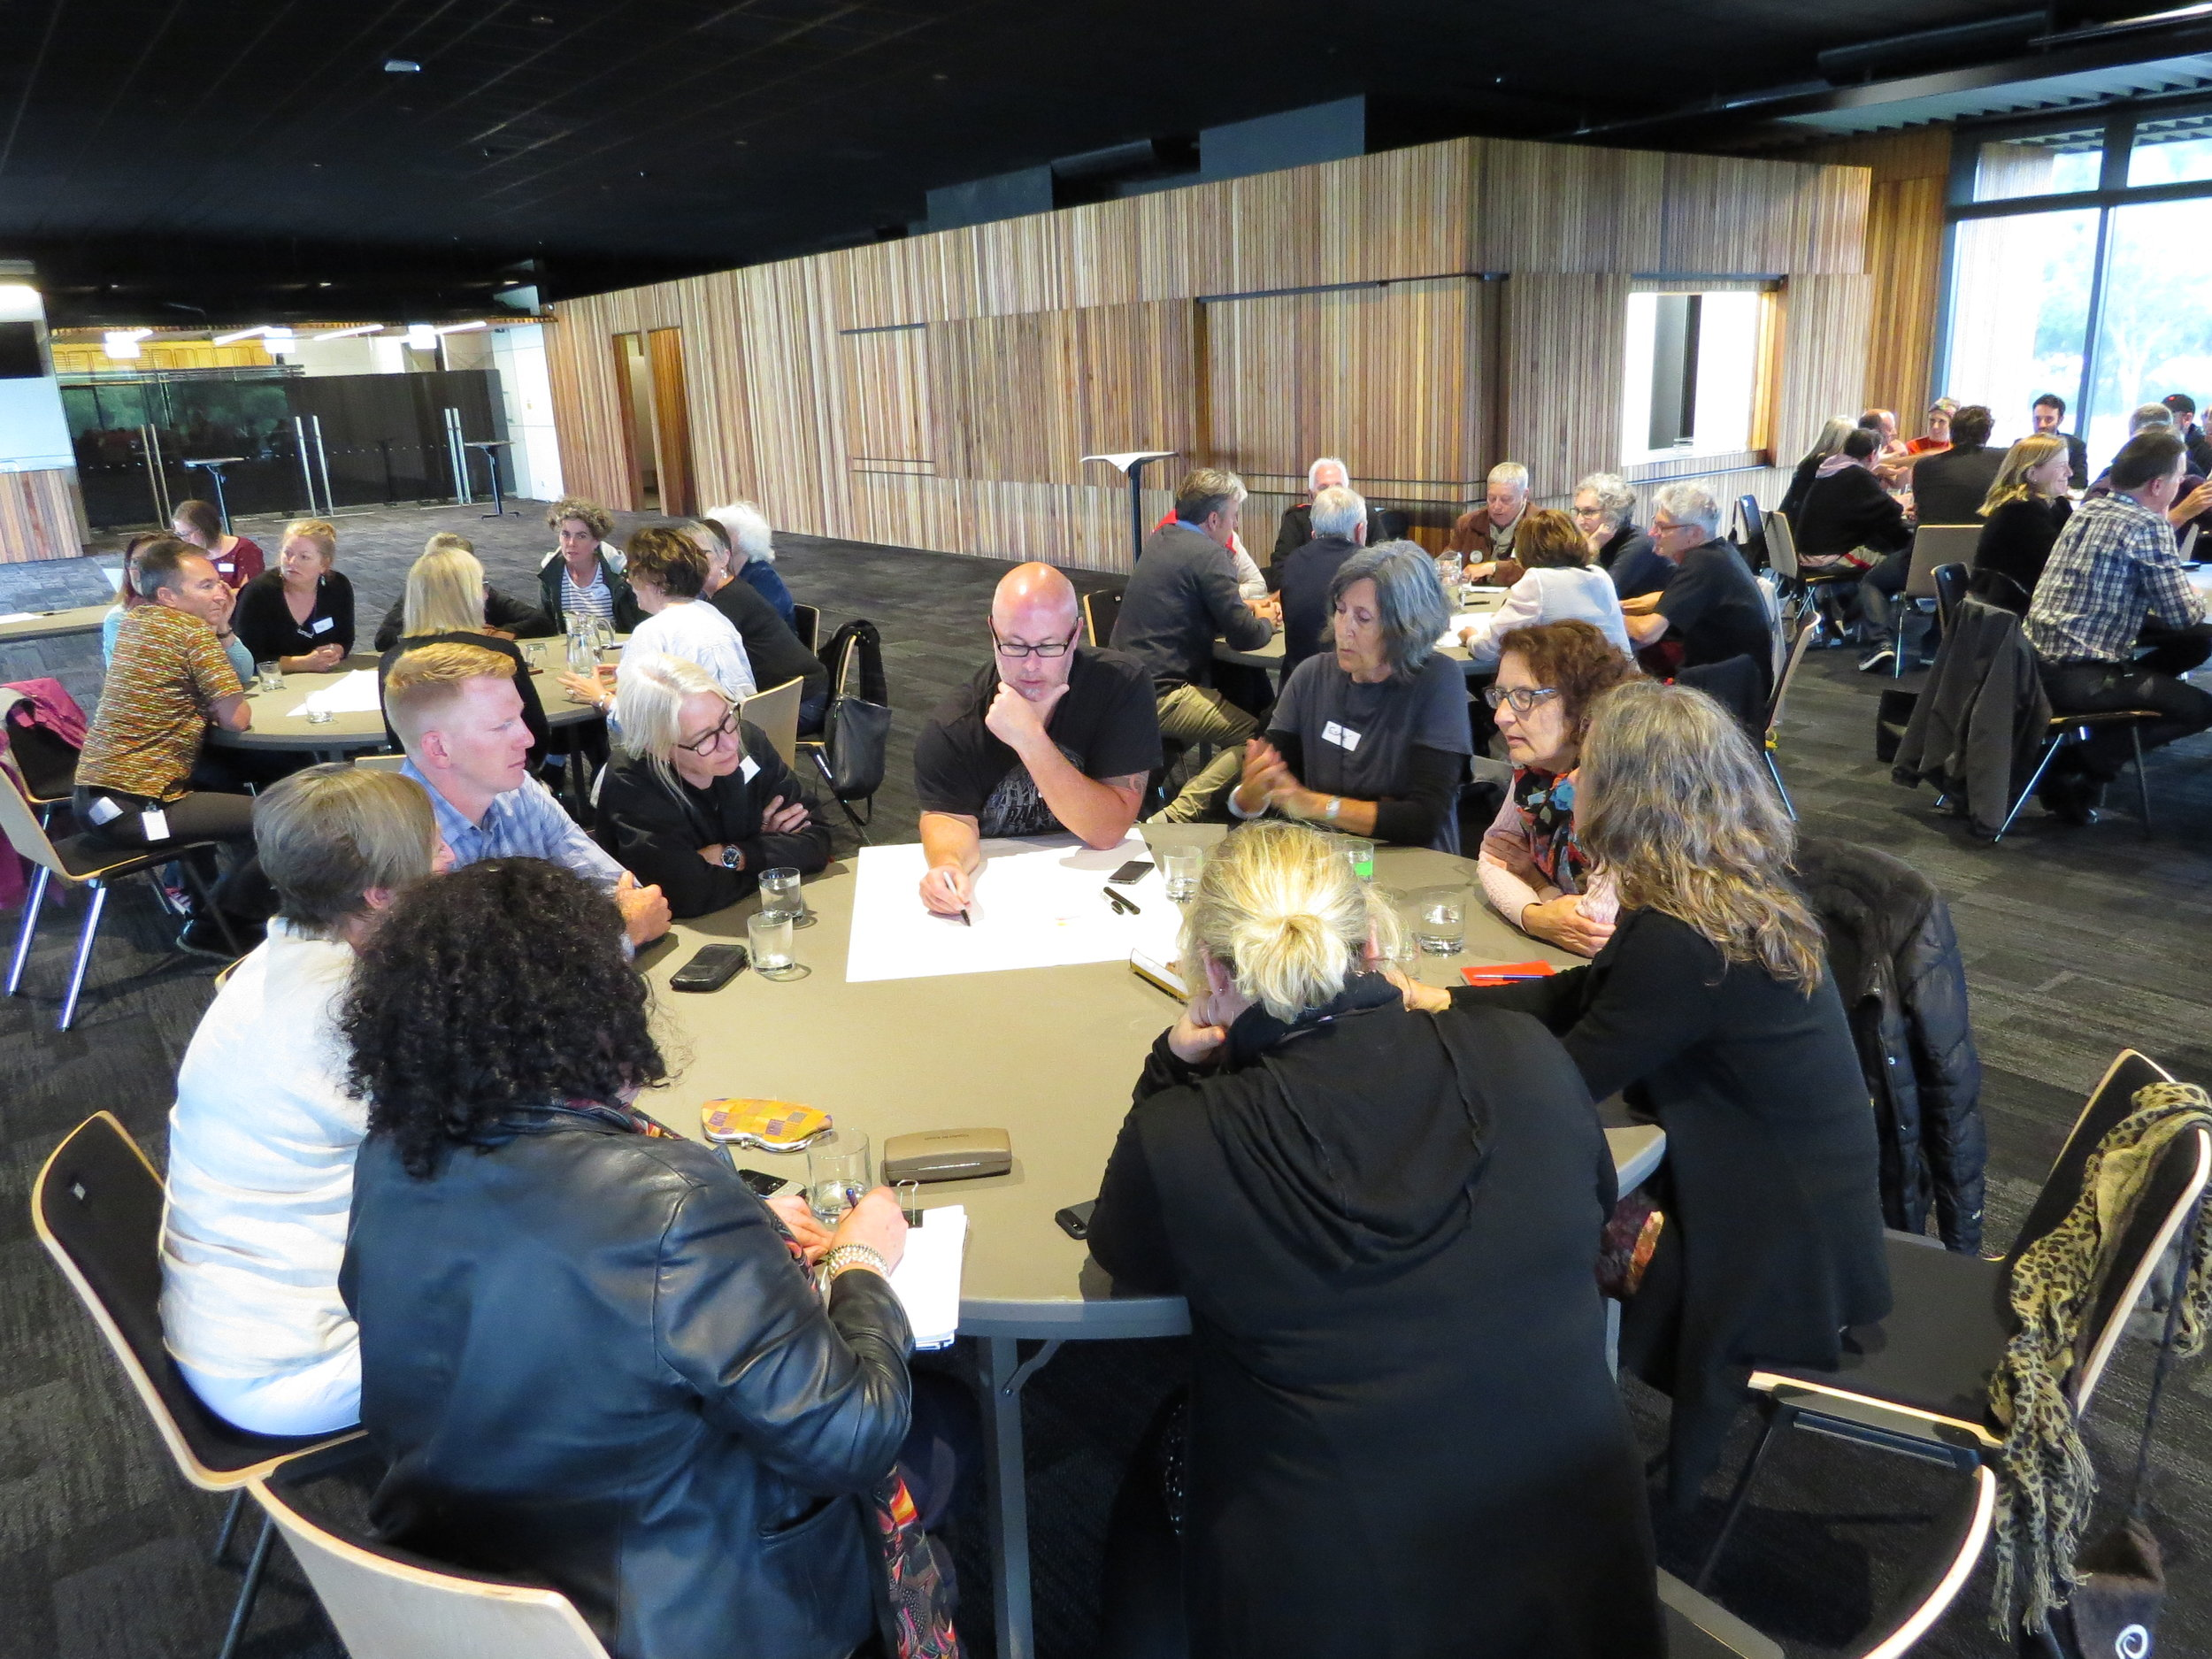 Nelson Arts Festival Planning Event showing groups